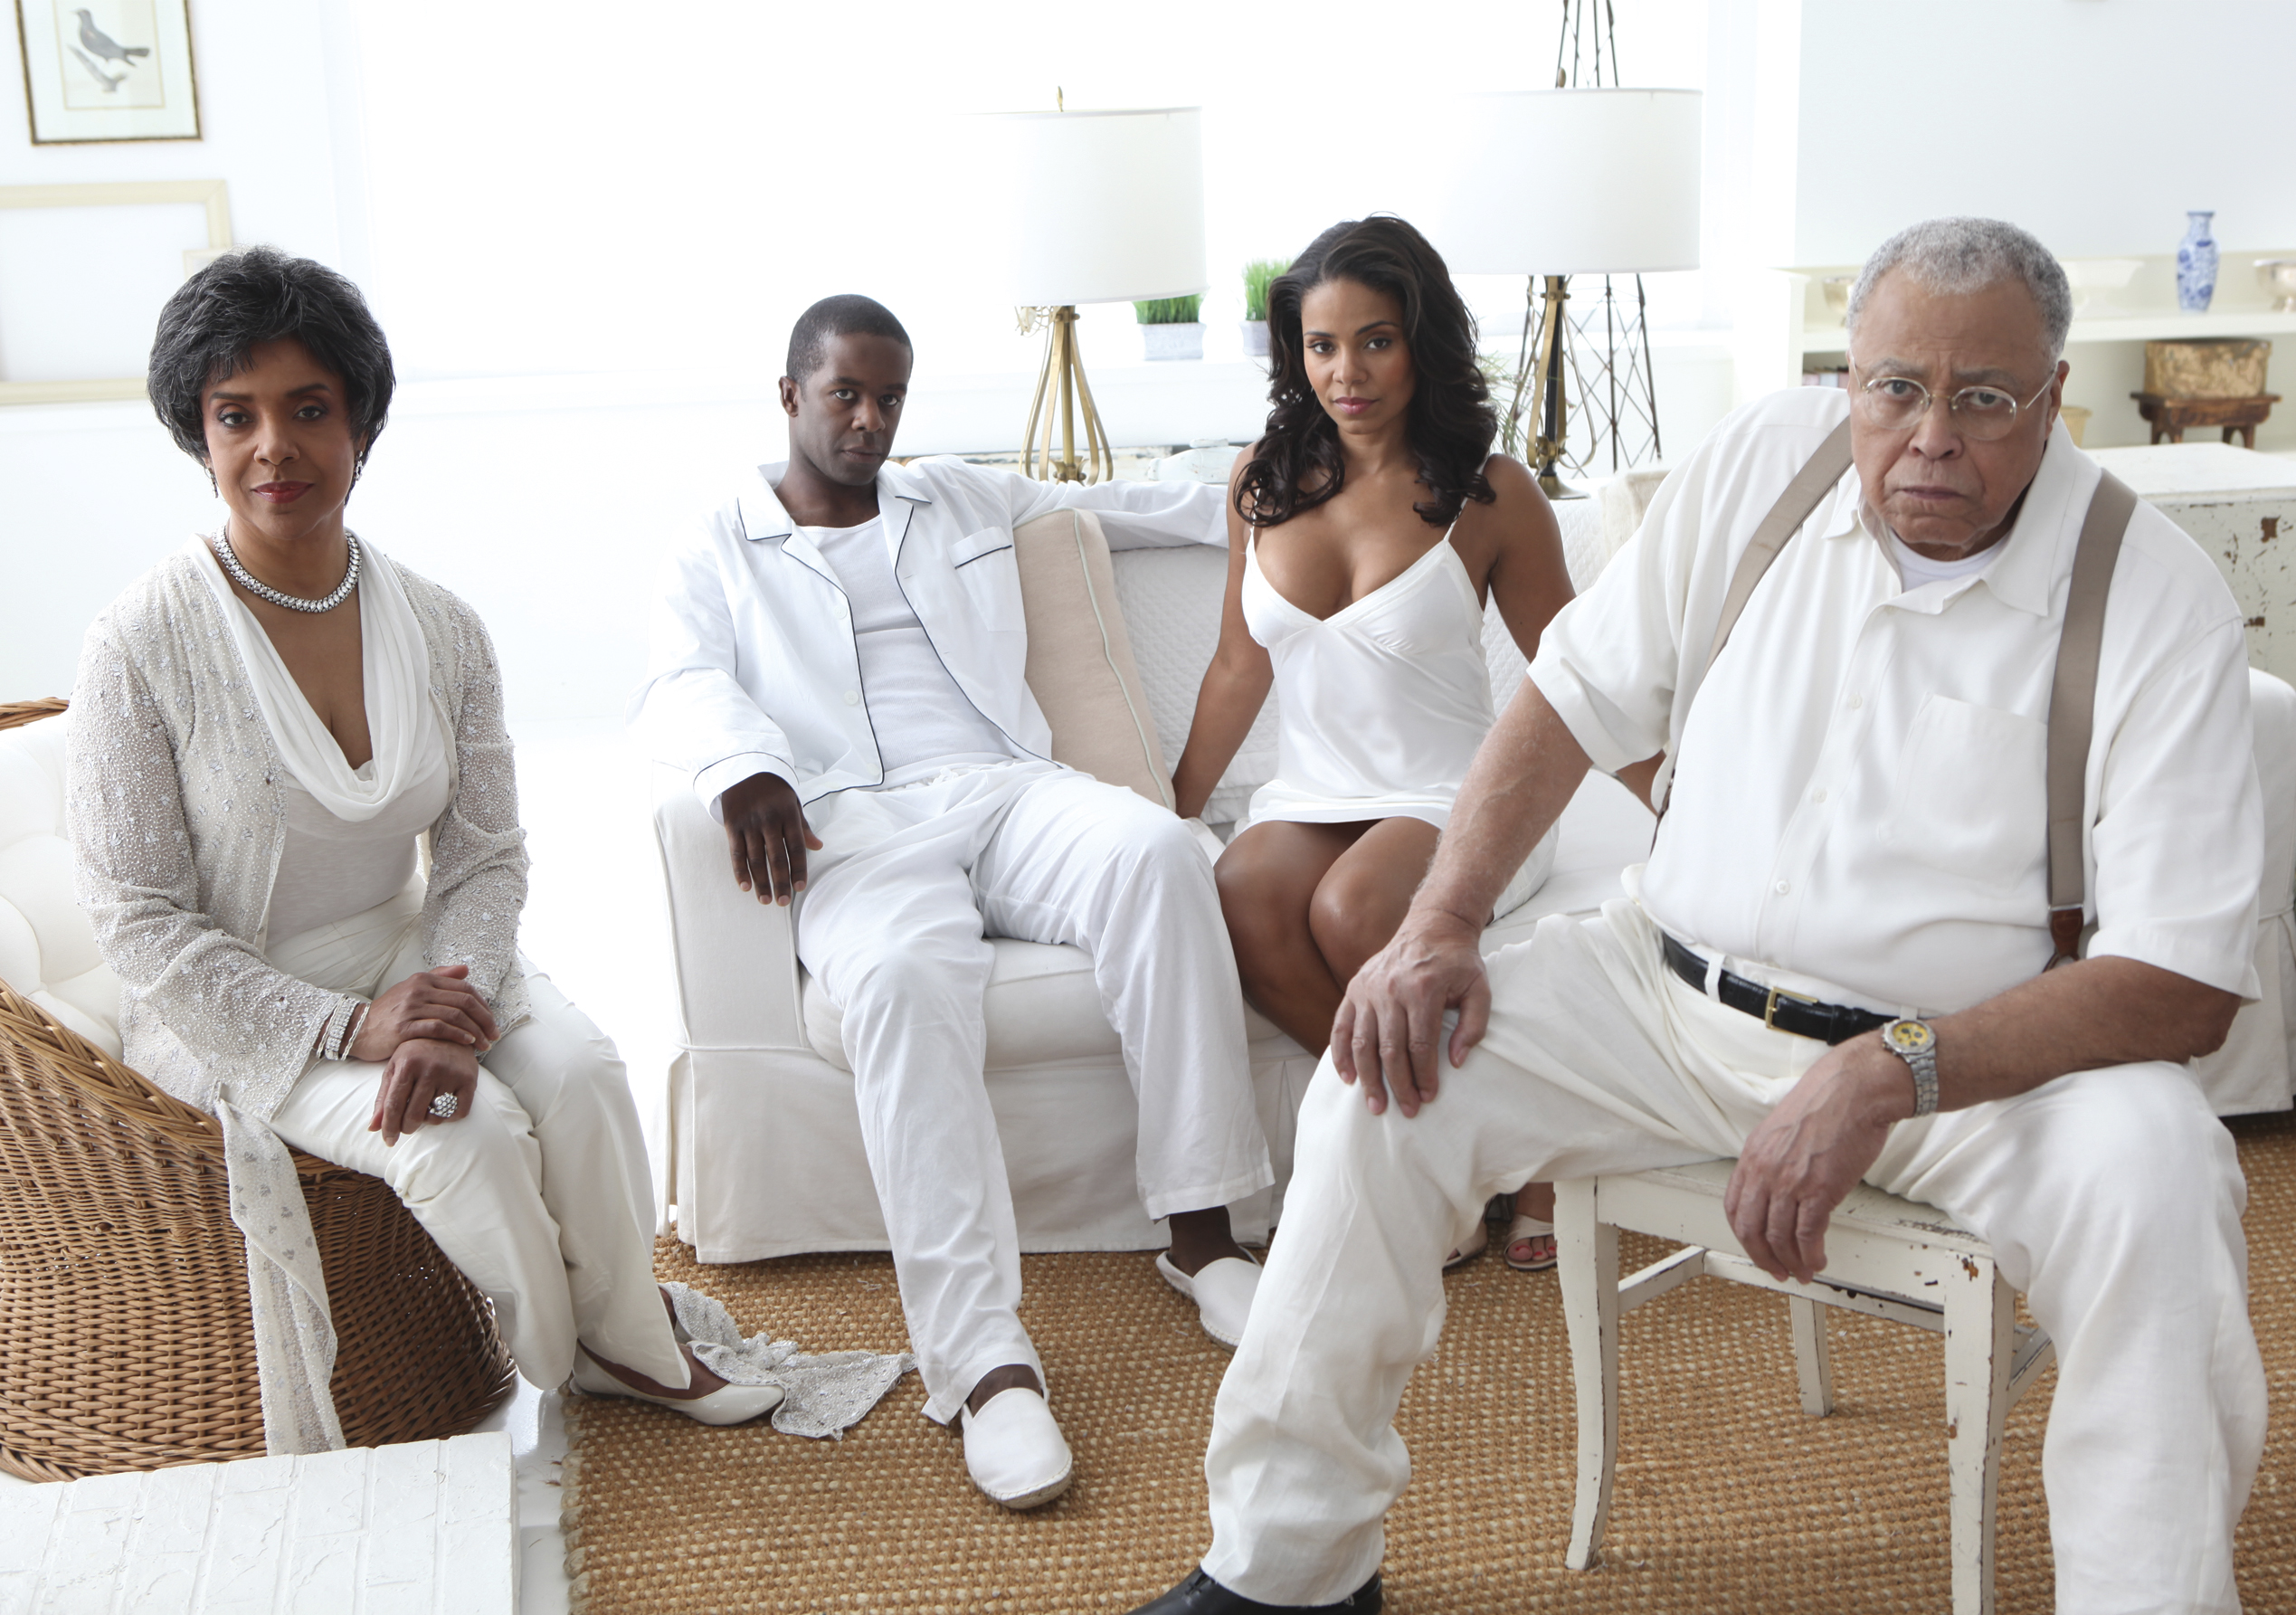 CAT ON A HOT TIN ROOF With Jones, Rashad, Lester & Lathan Previews 11/21 In The West End